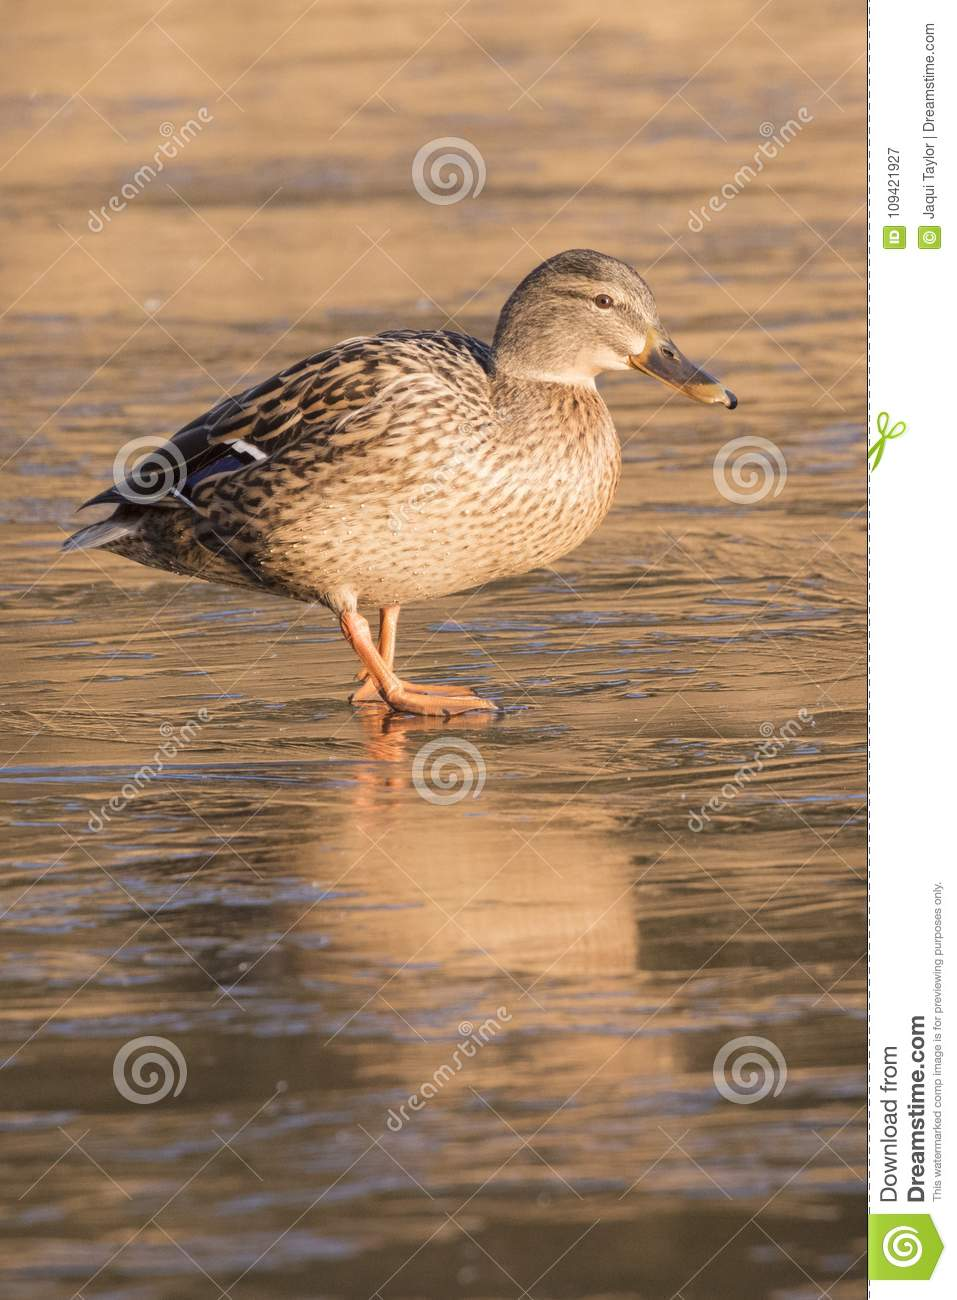 A duck walking on the ice